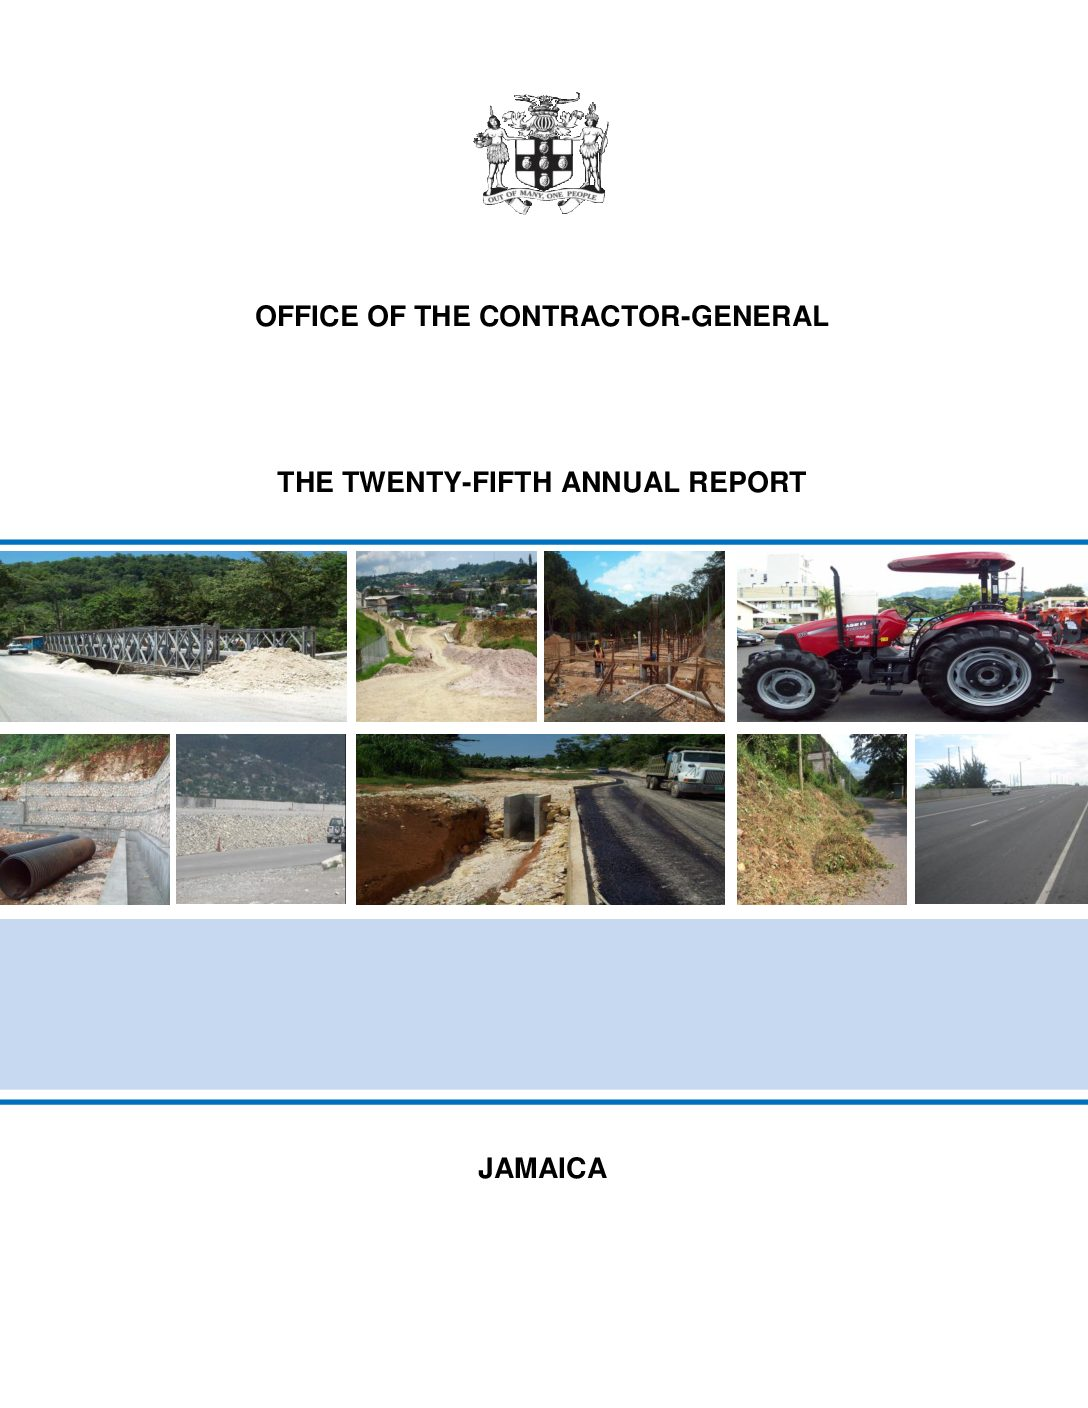 Office of the Contractor General Annual Report 2011